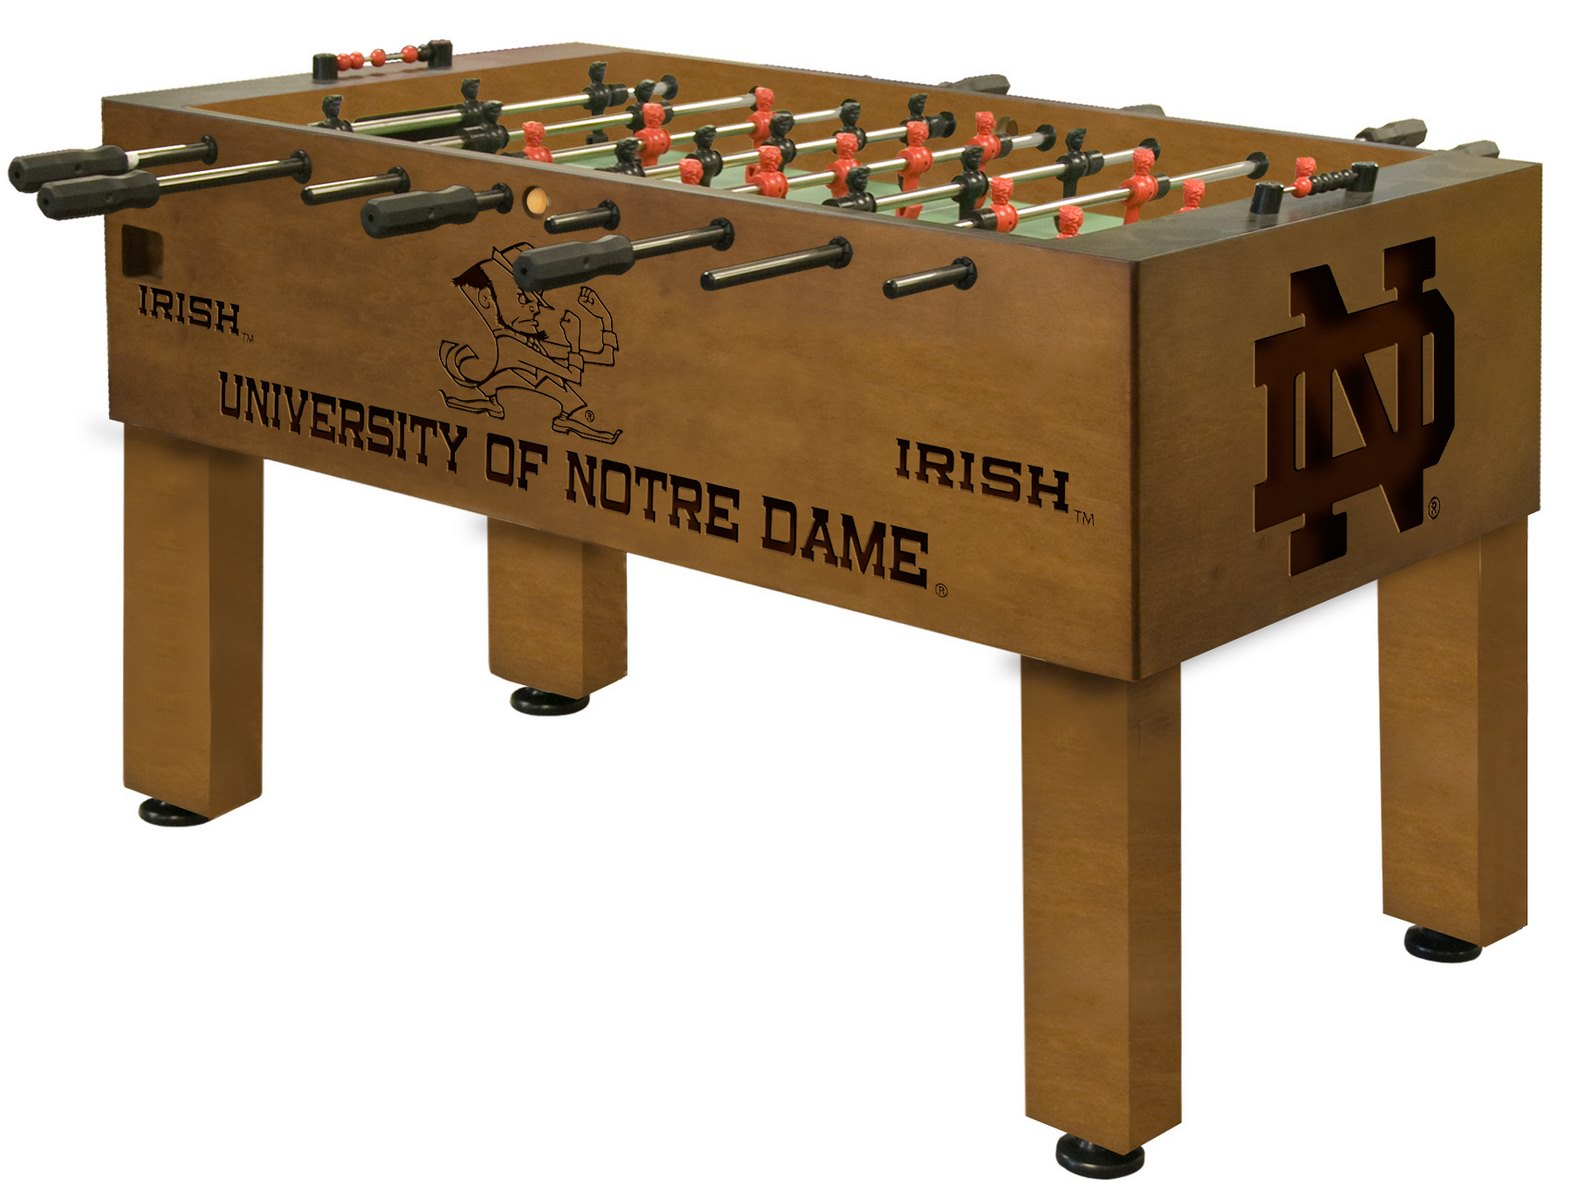 Beau Notre Dame ND Foosball Table